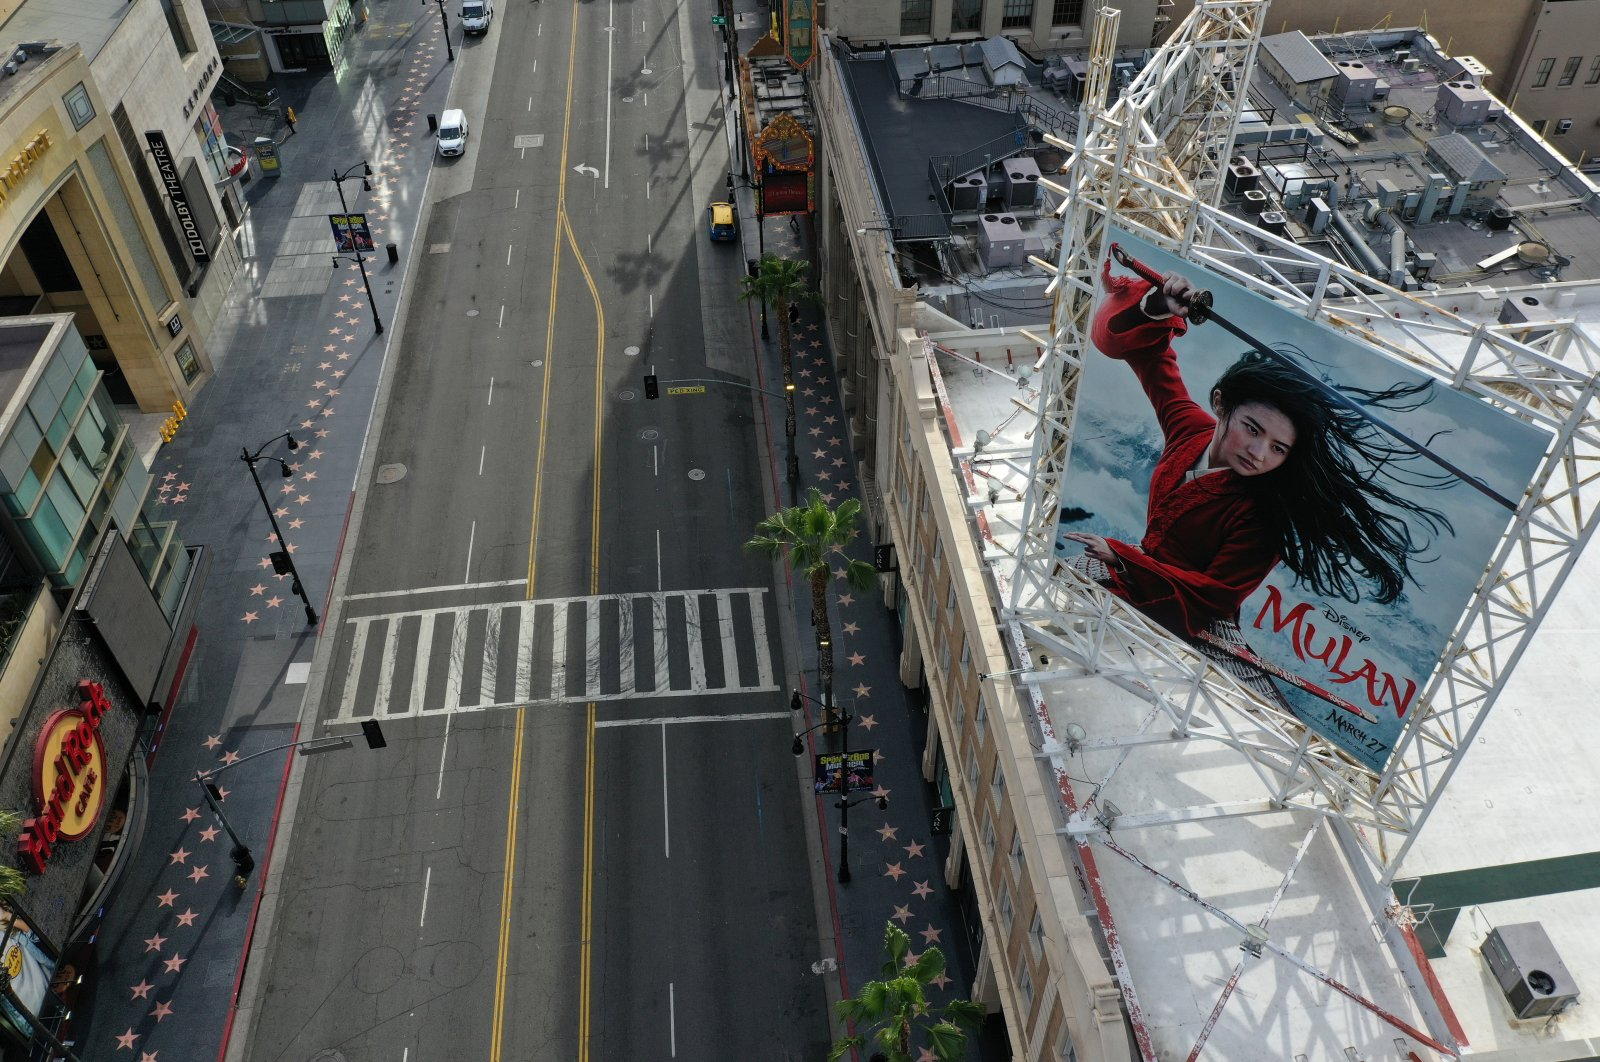 """A poster of the """"Mulan"""" movie, which was going to be released on March 27, towers over an empty Hollywood Boulevard, in Hollywood, Los Angeles, California, U.S., Tuesday, March 31, 2020. (Reuters Photo)"""